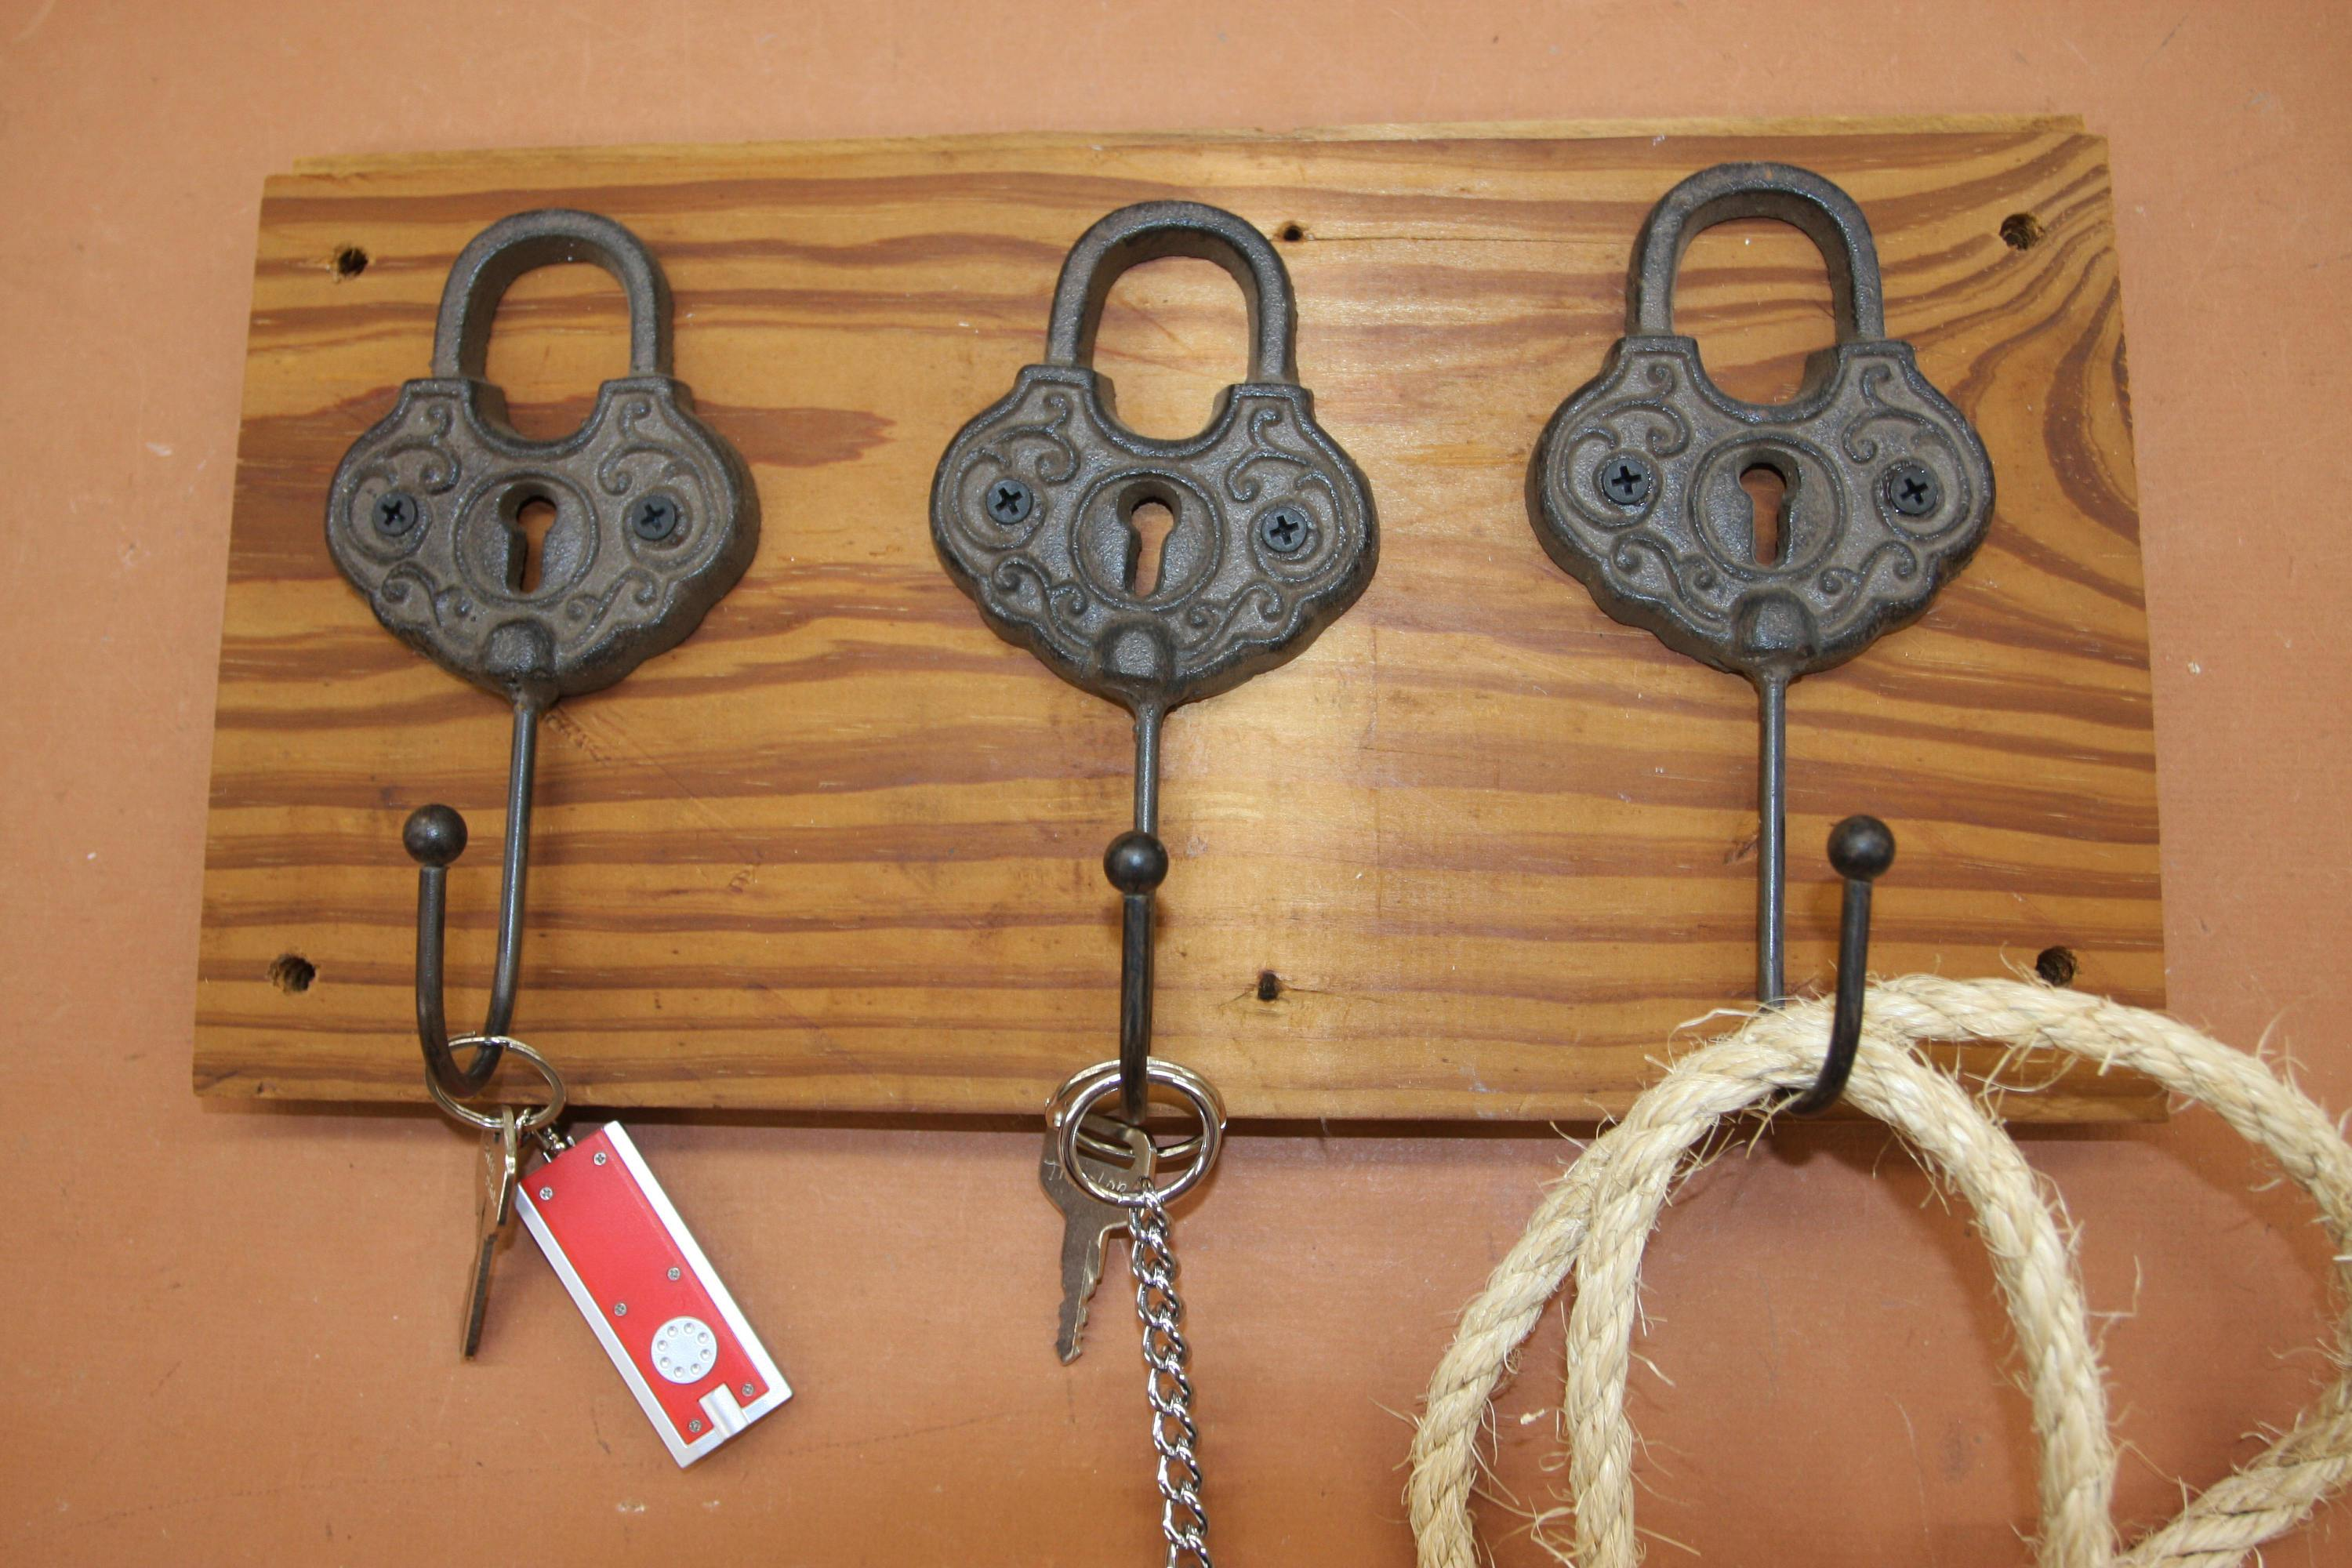 Old Fashion Padlock Design Key Hooks Rack, Handmade in USA, Cast Iron, Reclaimed 100 Year Old Wood, The Country Hookers, CH-13